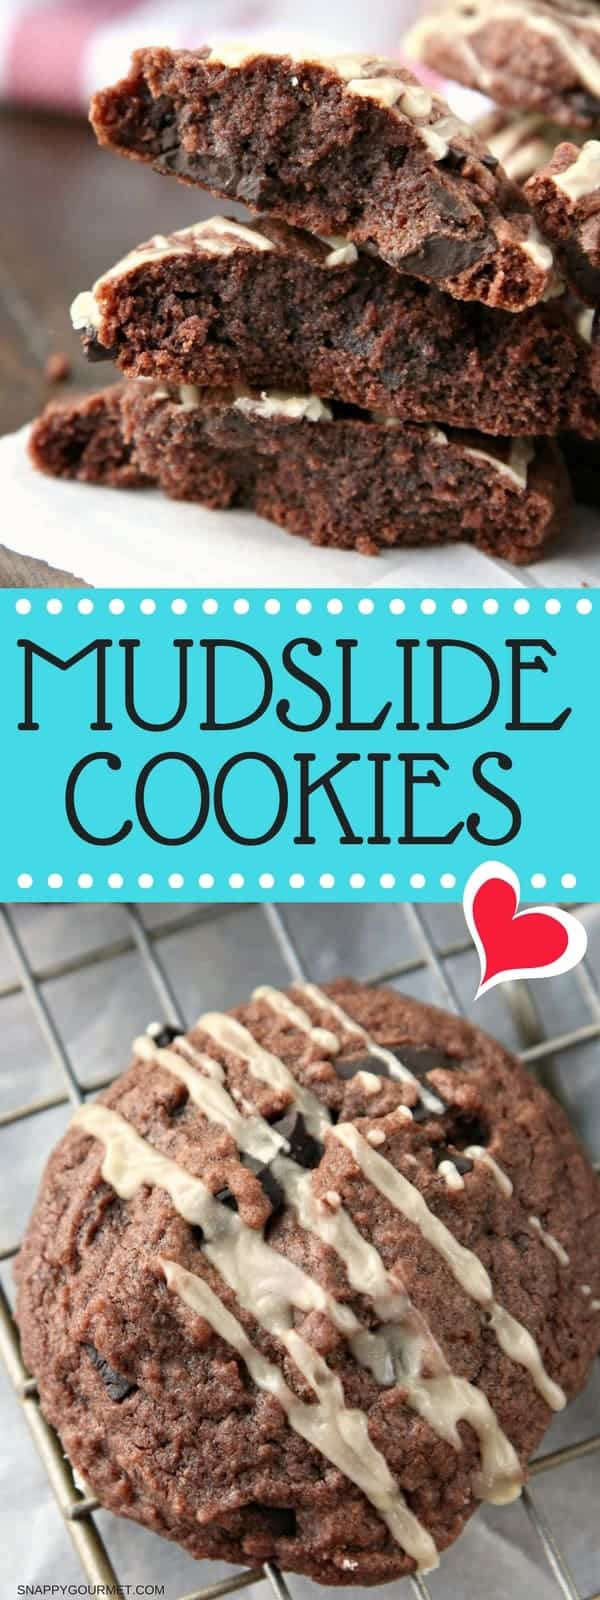 Mudslide Cookies Recipe - easy brownie cookie with Kahlua and Baileys Irish Cream just like a Mudslide Cocktail!